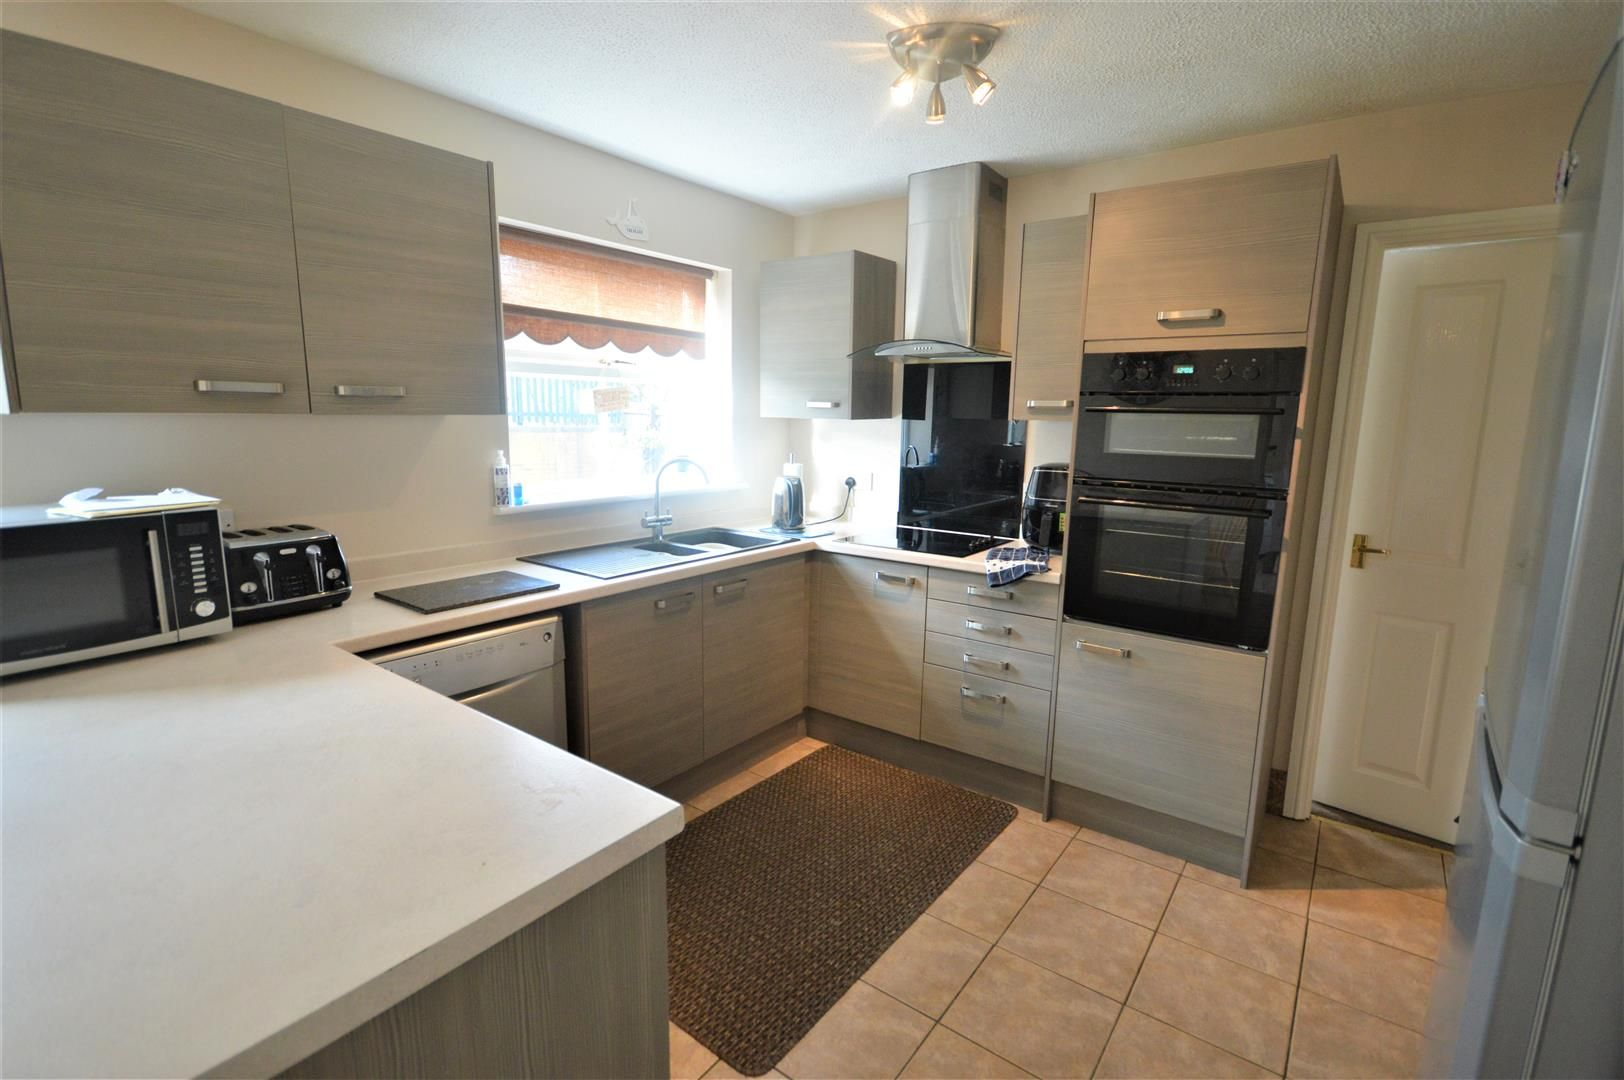 5 bed detached for sale in Leominster 4